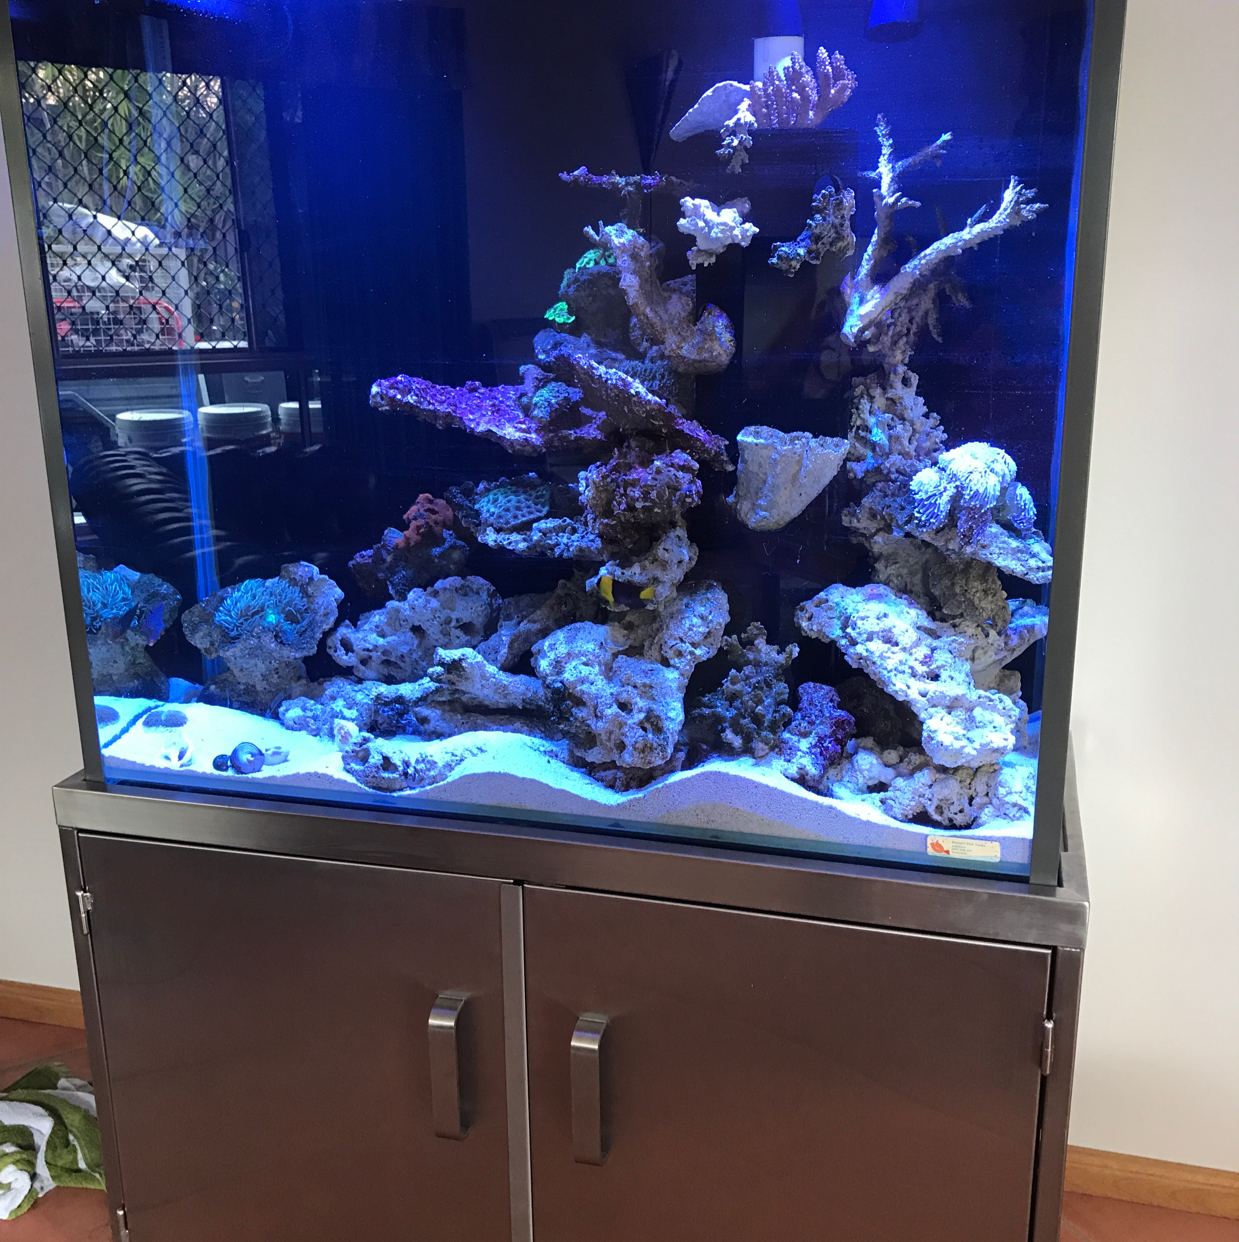 My Aquarium on May 13, 2017